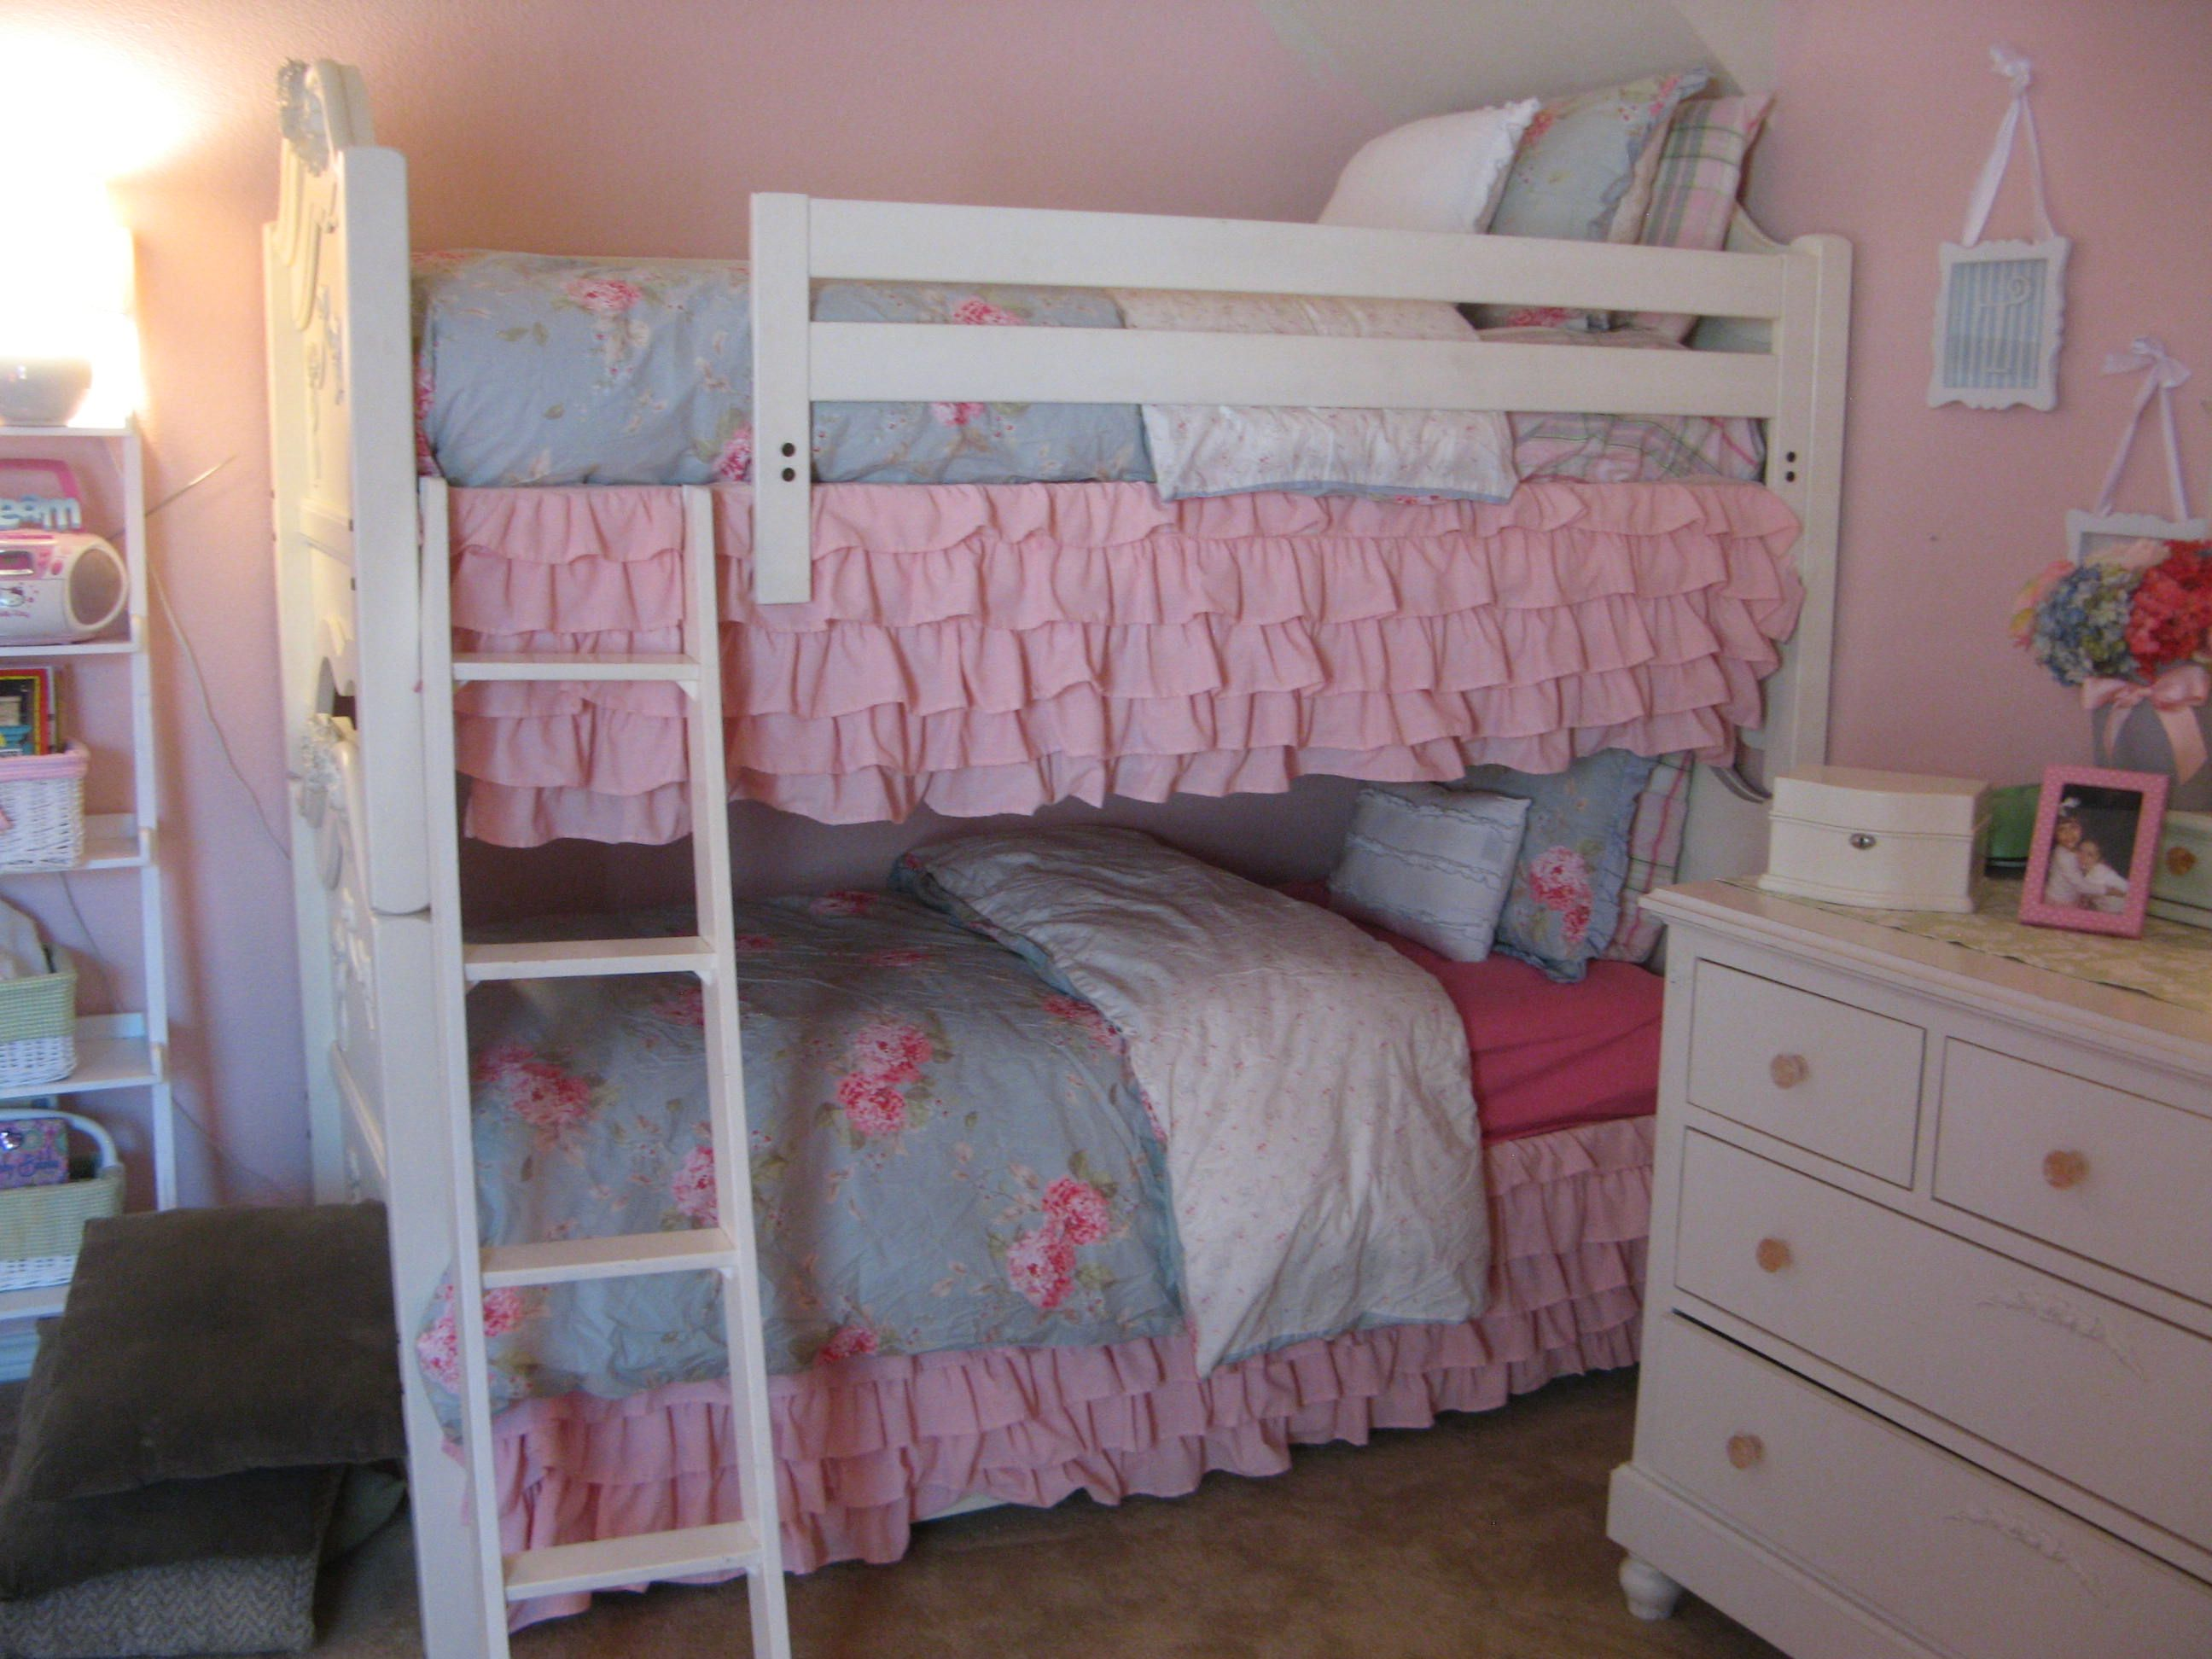 Found Bunk Beds On CL For $400. Bedding Is From Targets Simply Shabby Chic  Line